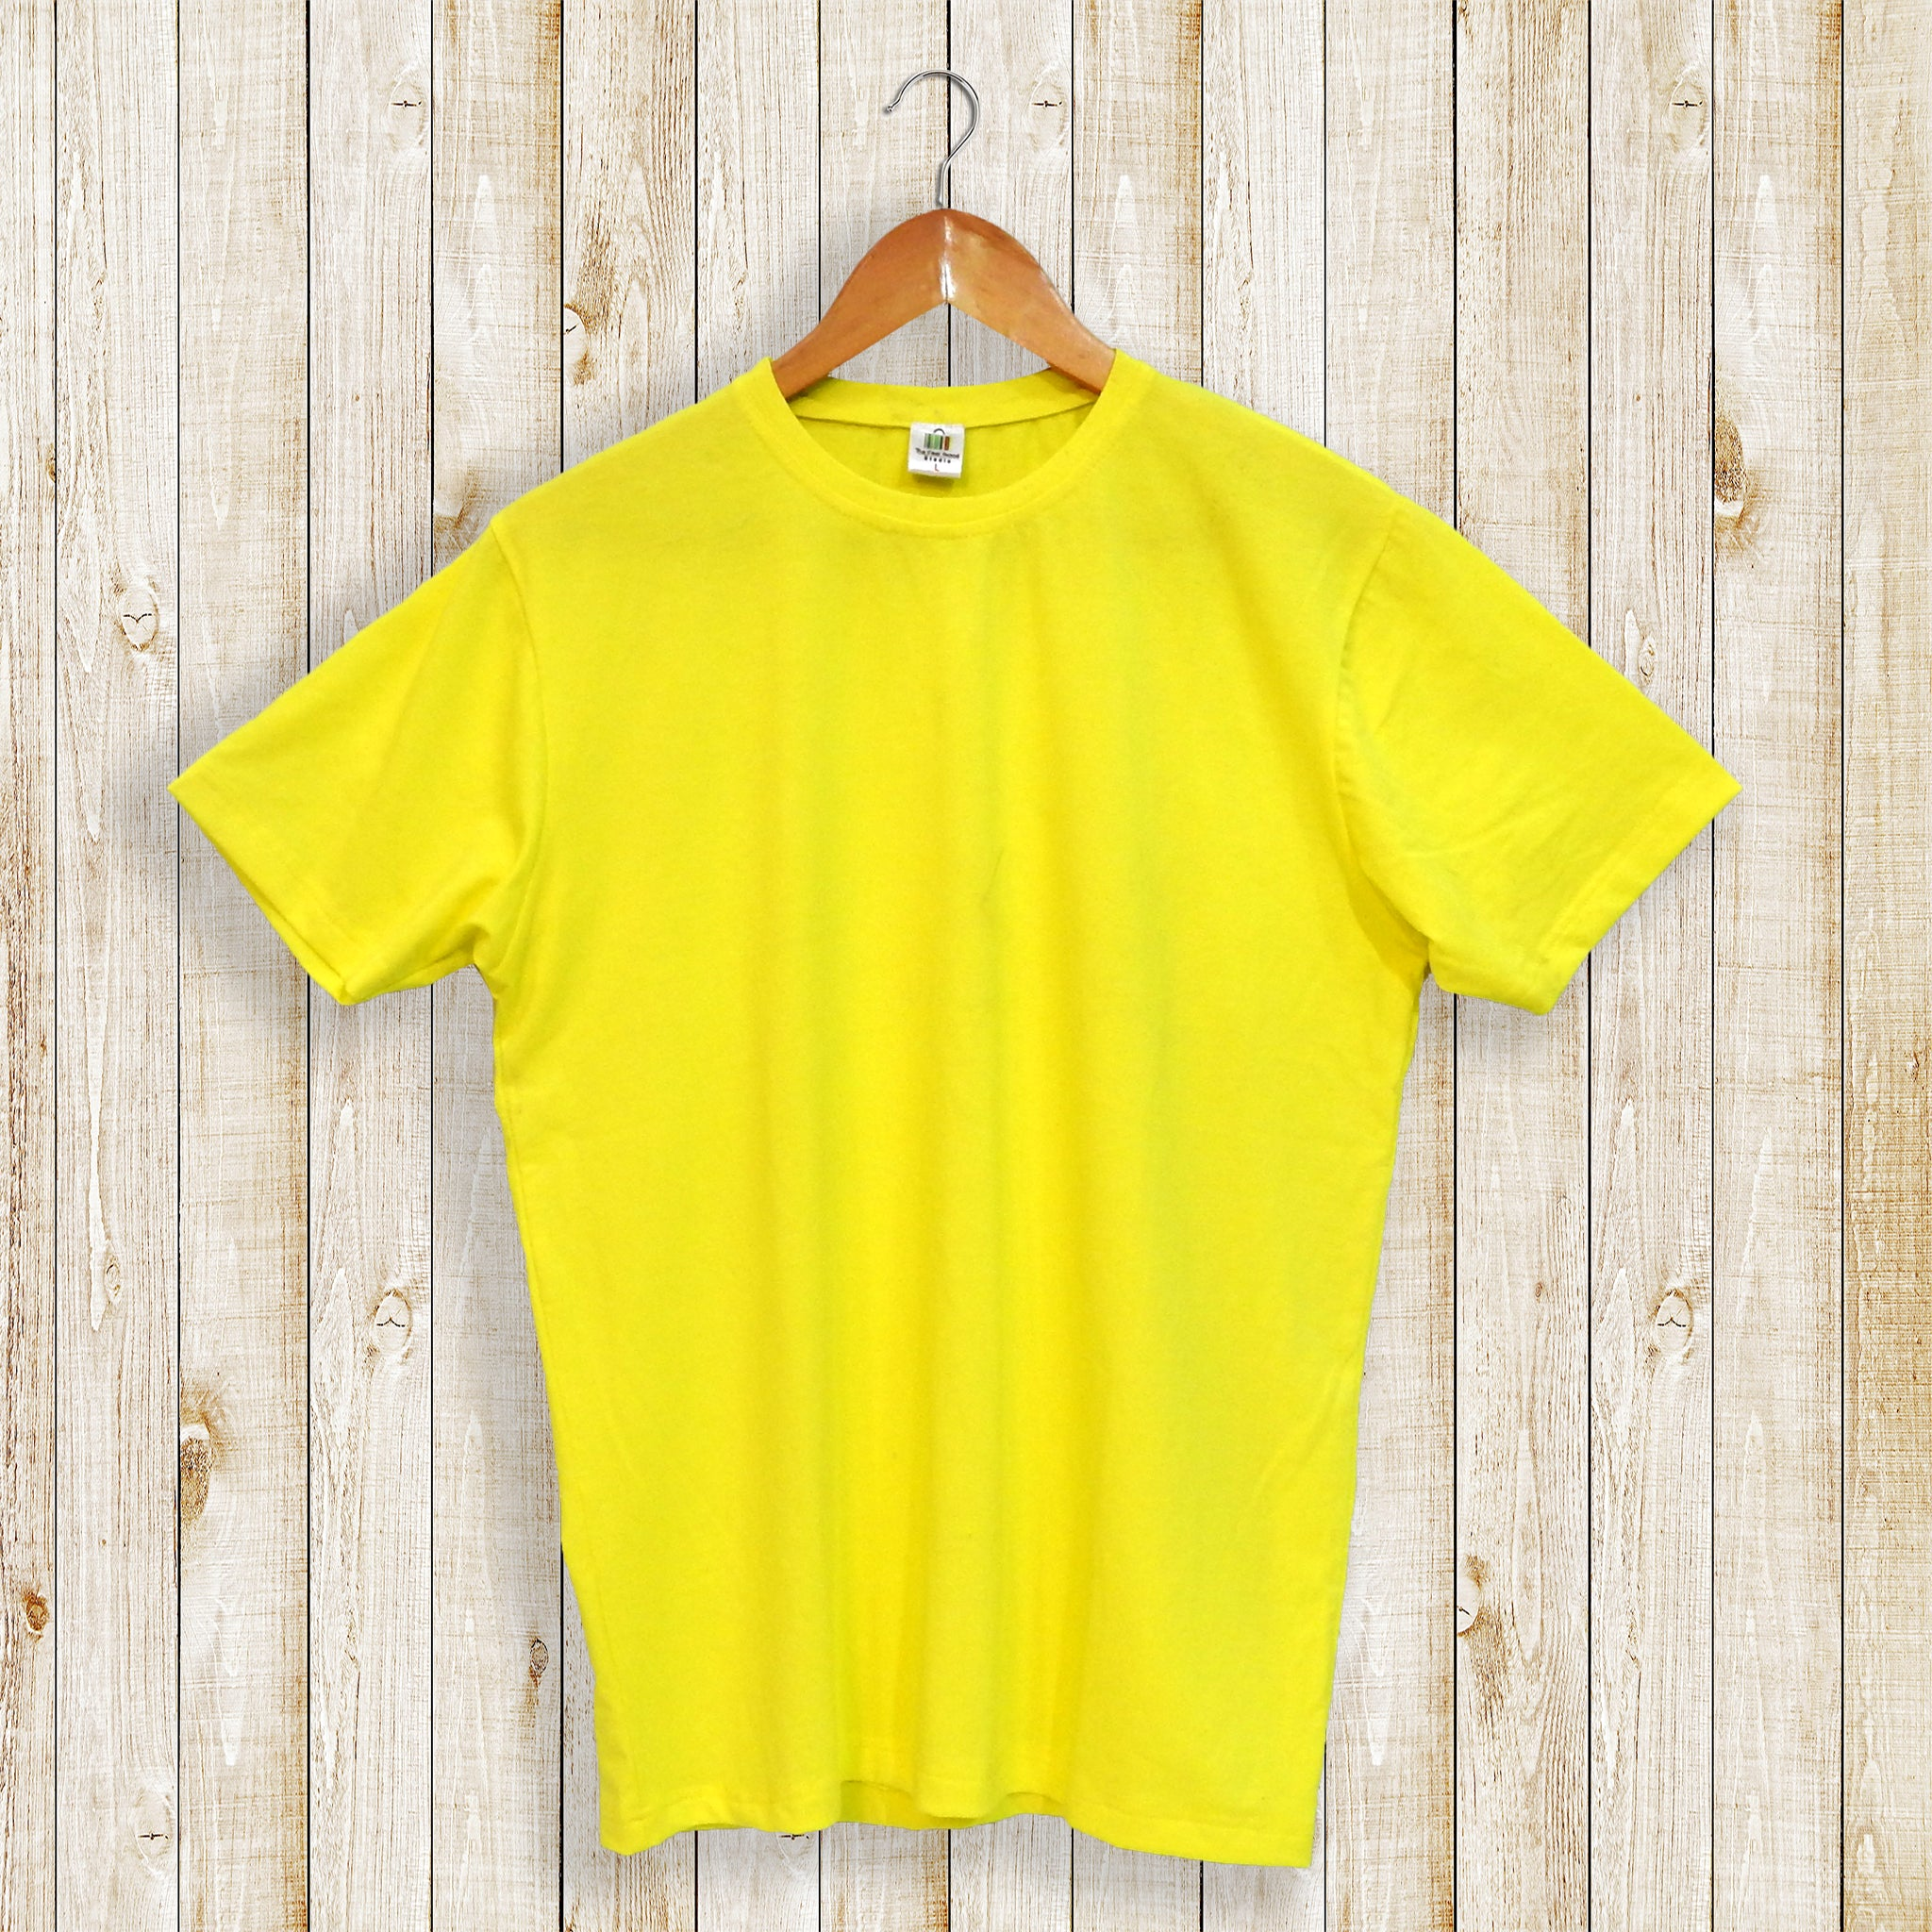 Canary Yellow Plain Women's Tee